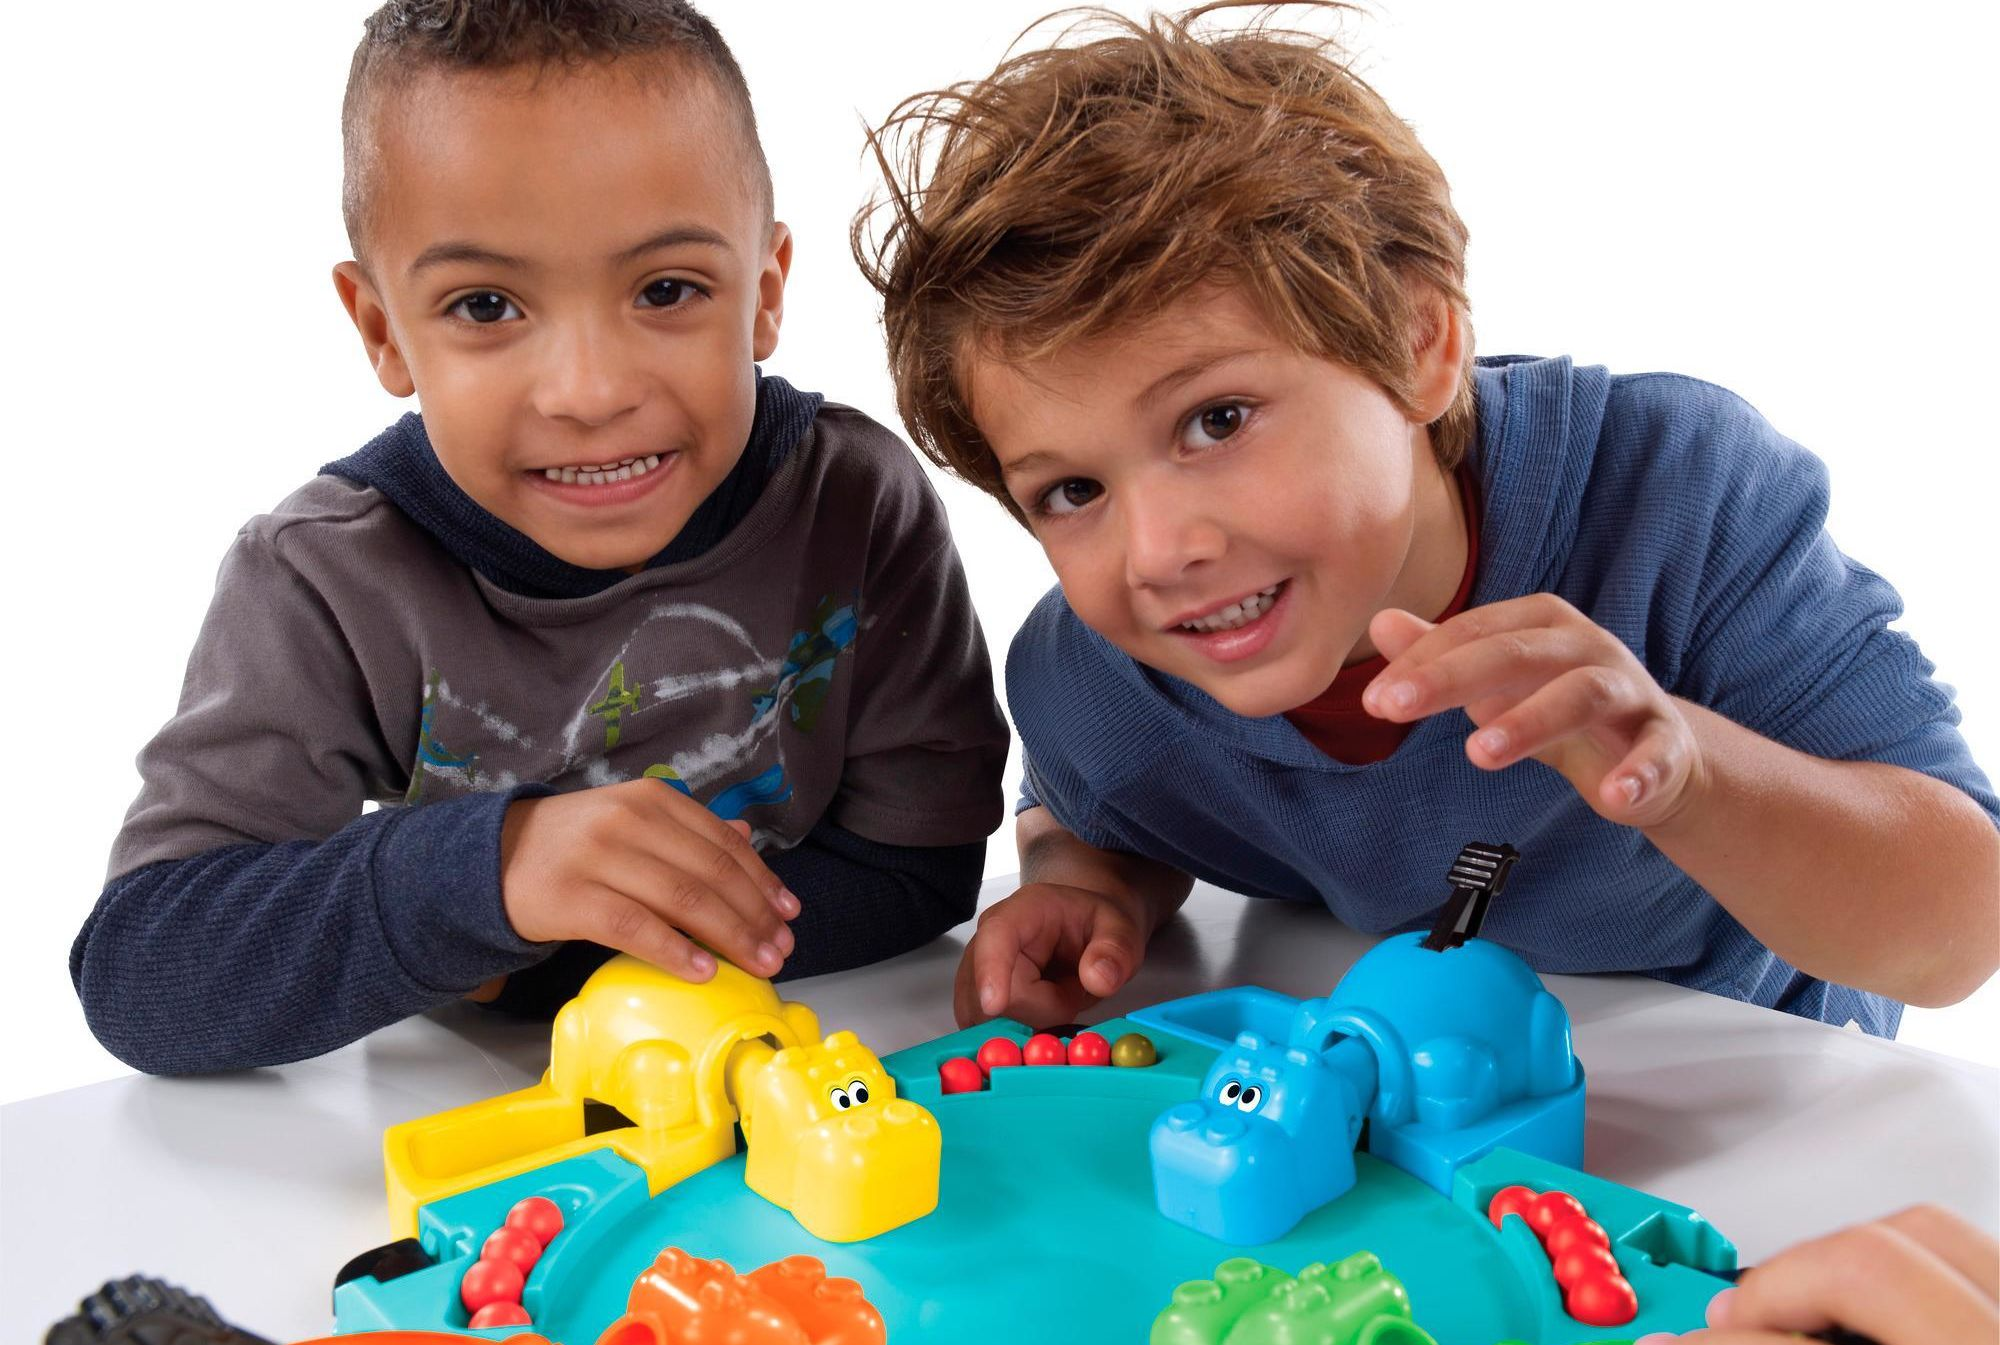 7 Facts About Hungry Hungry Hippos Mental Floss